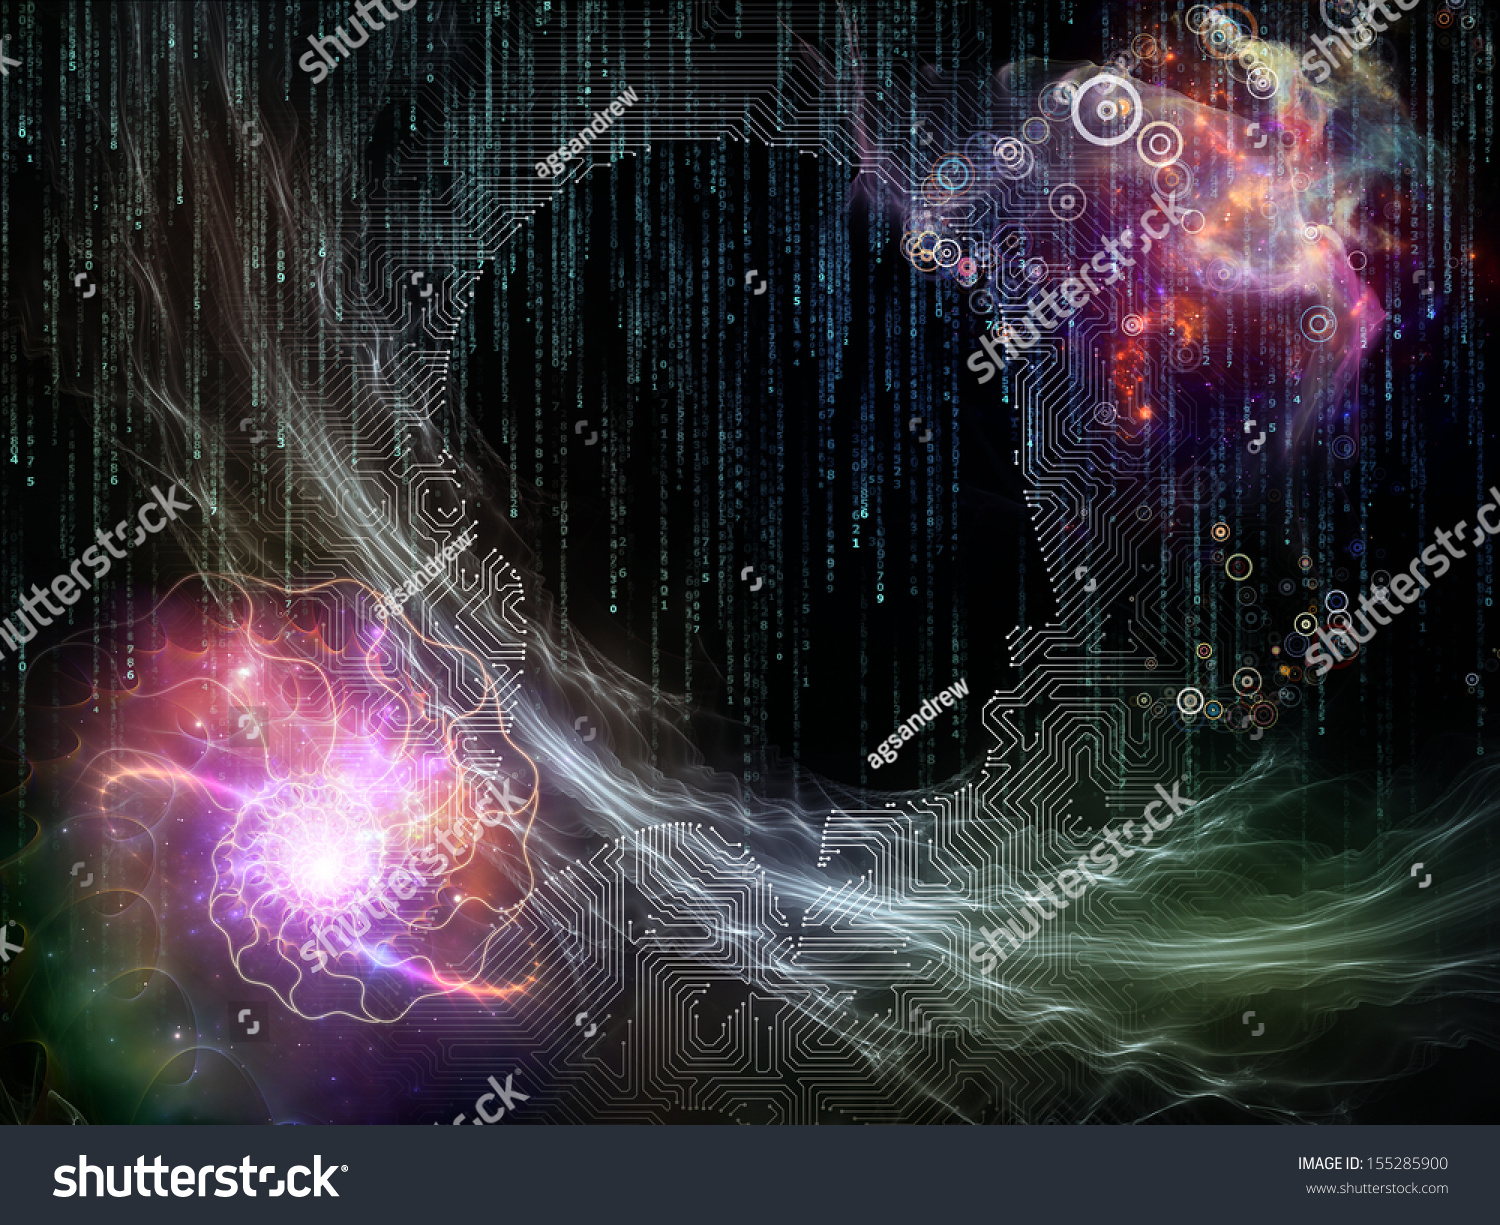 Abstract Design Made Circuit Board Texture Stock Illustration Designing A And Getting It Of Human Profile Technological Elements On The Subject